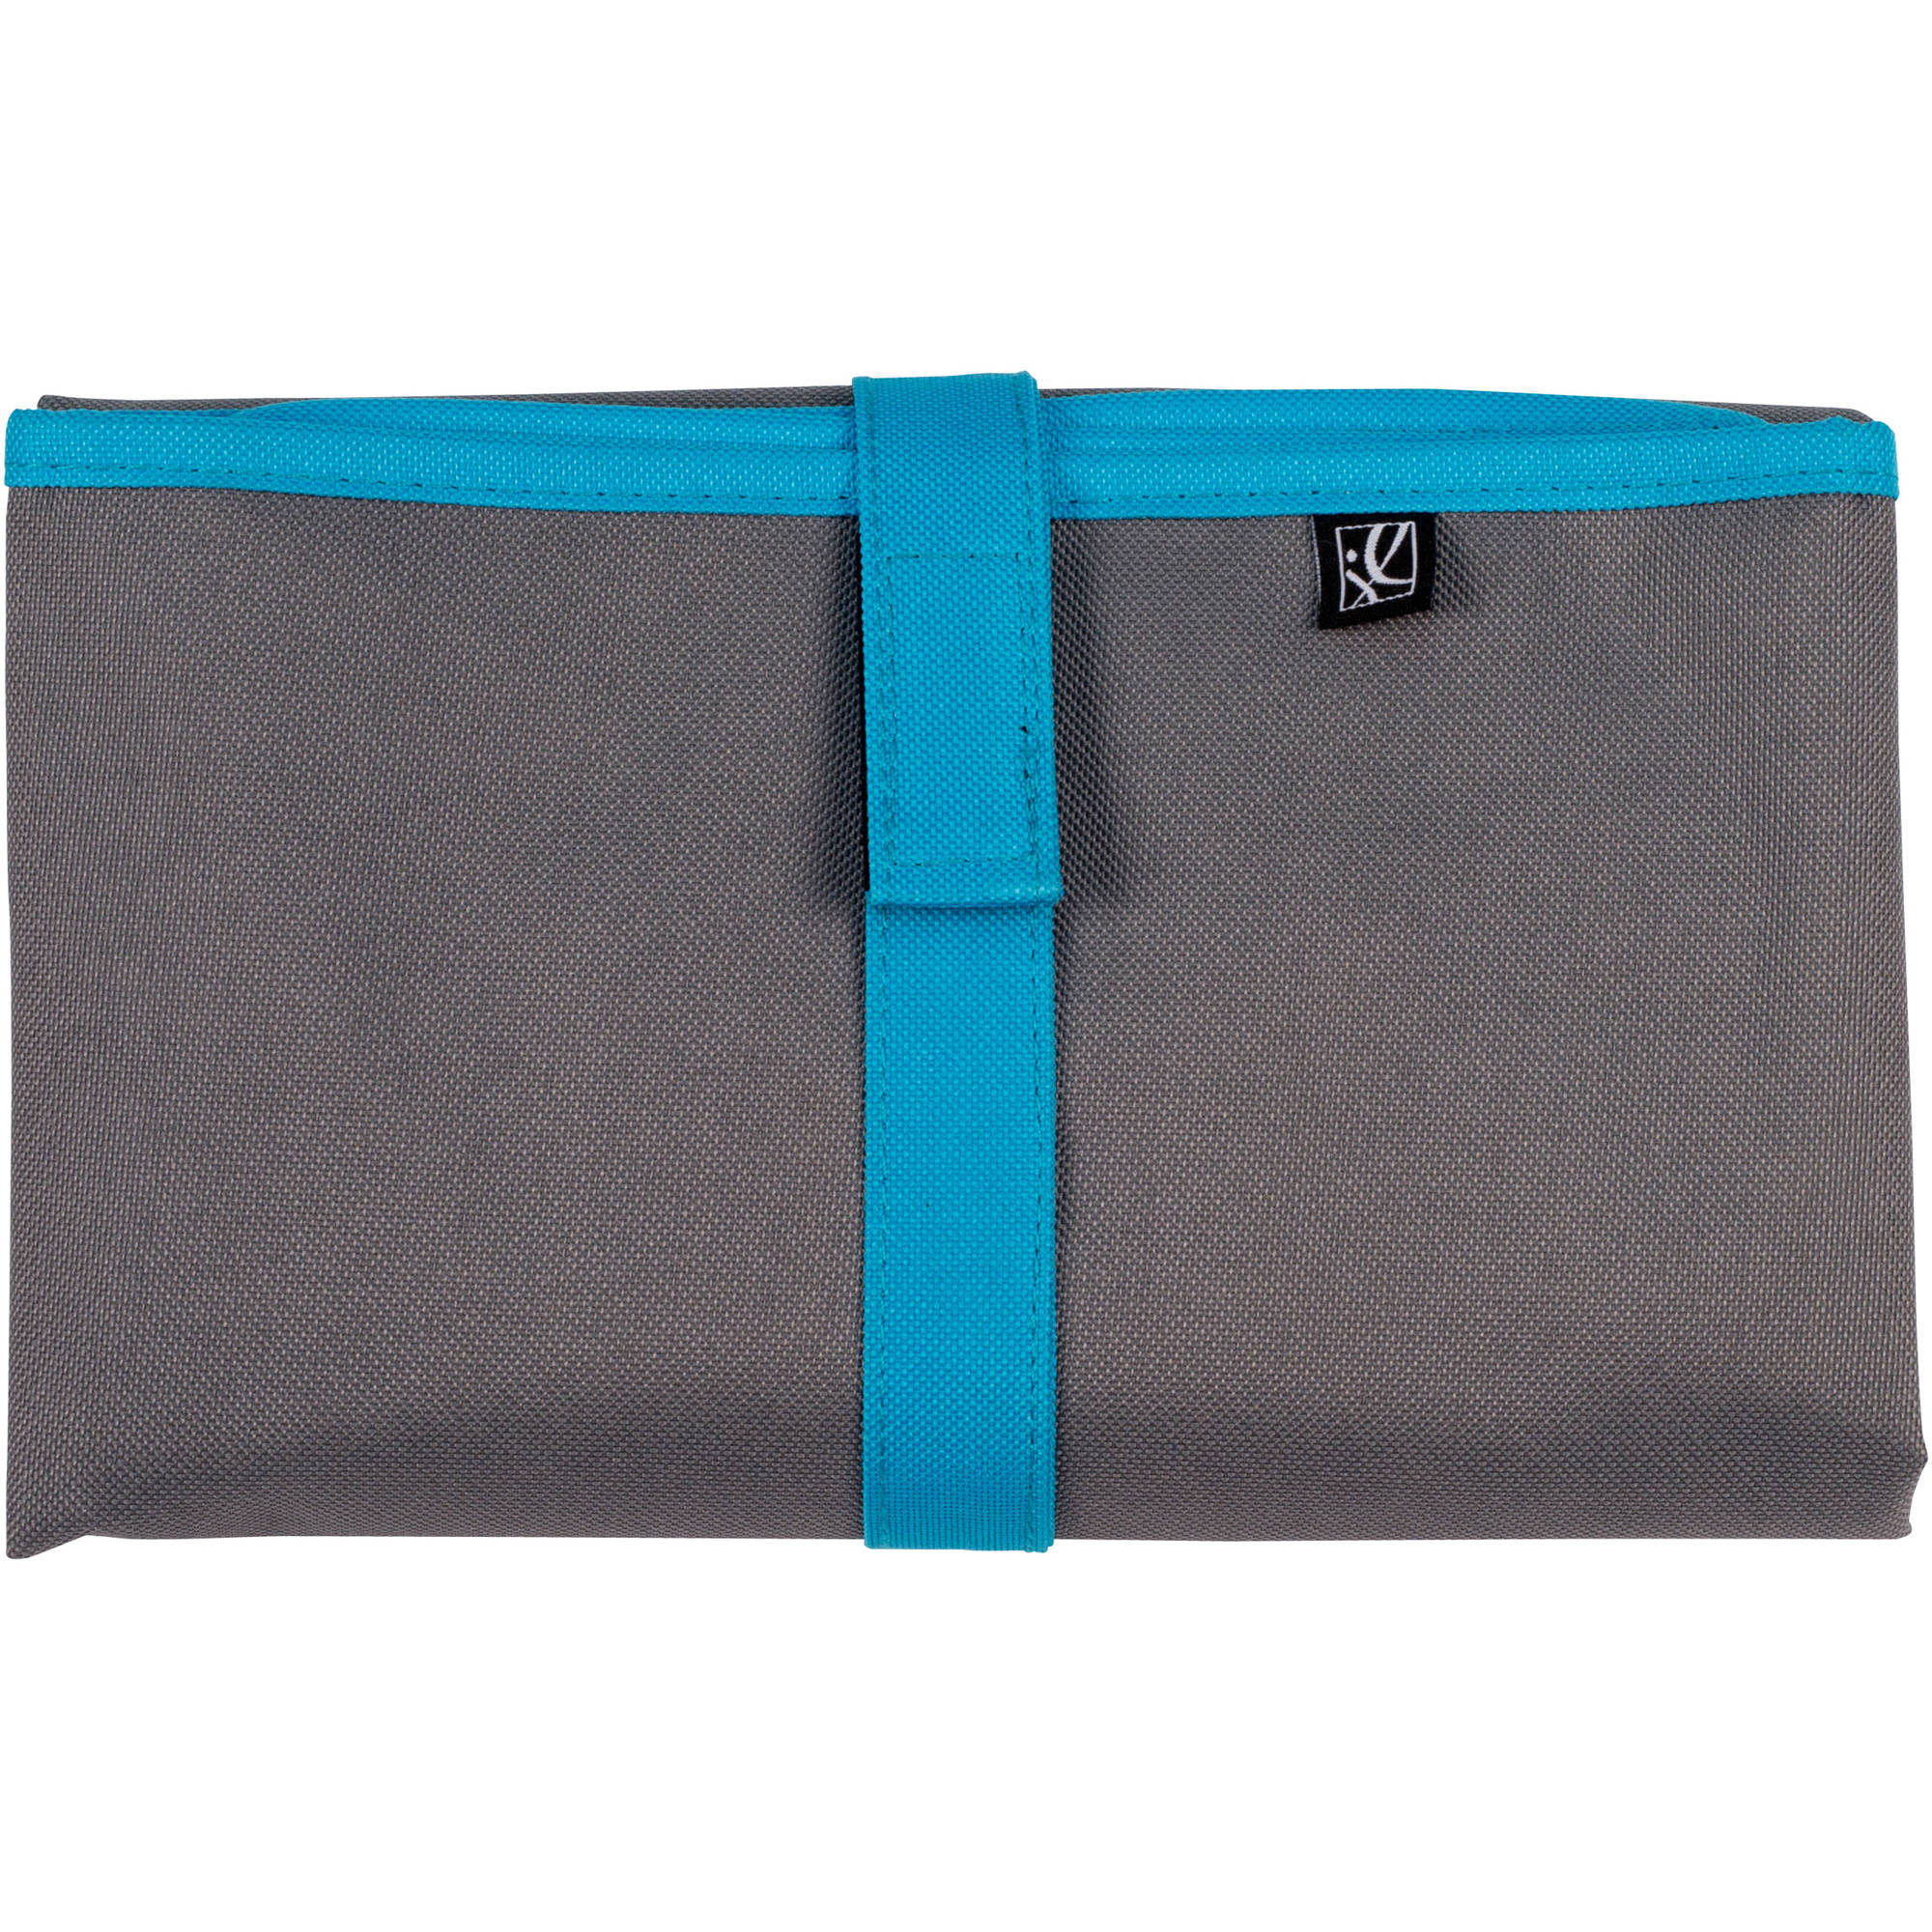 J.L. Childress Full Body Changing Pad, Gray Teal by J.L. Childress